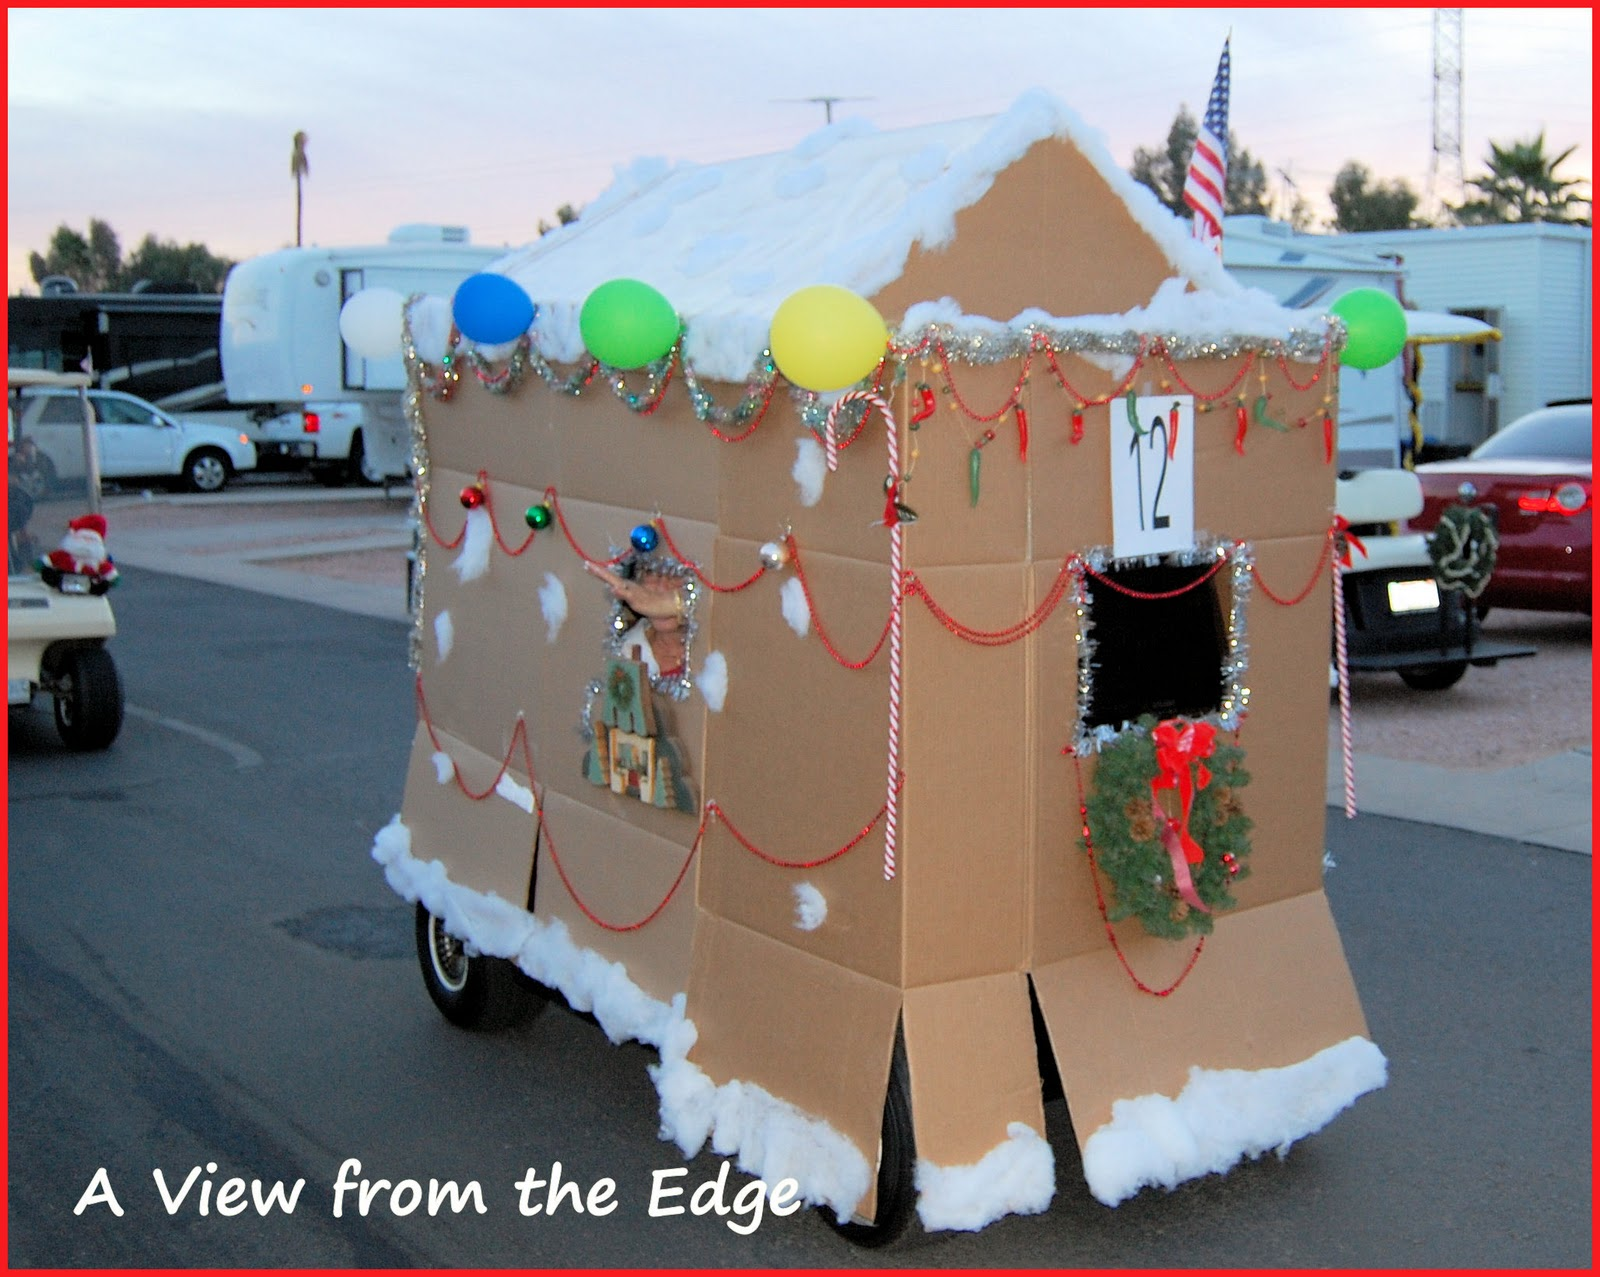 A View from the Edge: Ring in the Holidays! Golf Cart Gingerbread House on golf trolley, golf games, golf machine, golf handicap, golf card, golf players, golf words, golf accessories, golf hitting nets, golf girls, golf buggy, golf cartoons, golf tools,